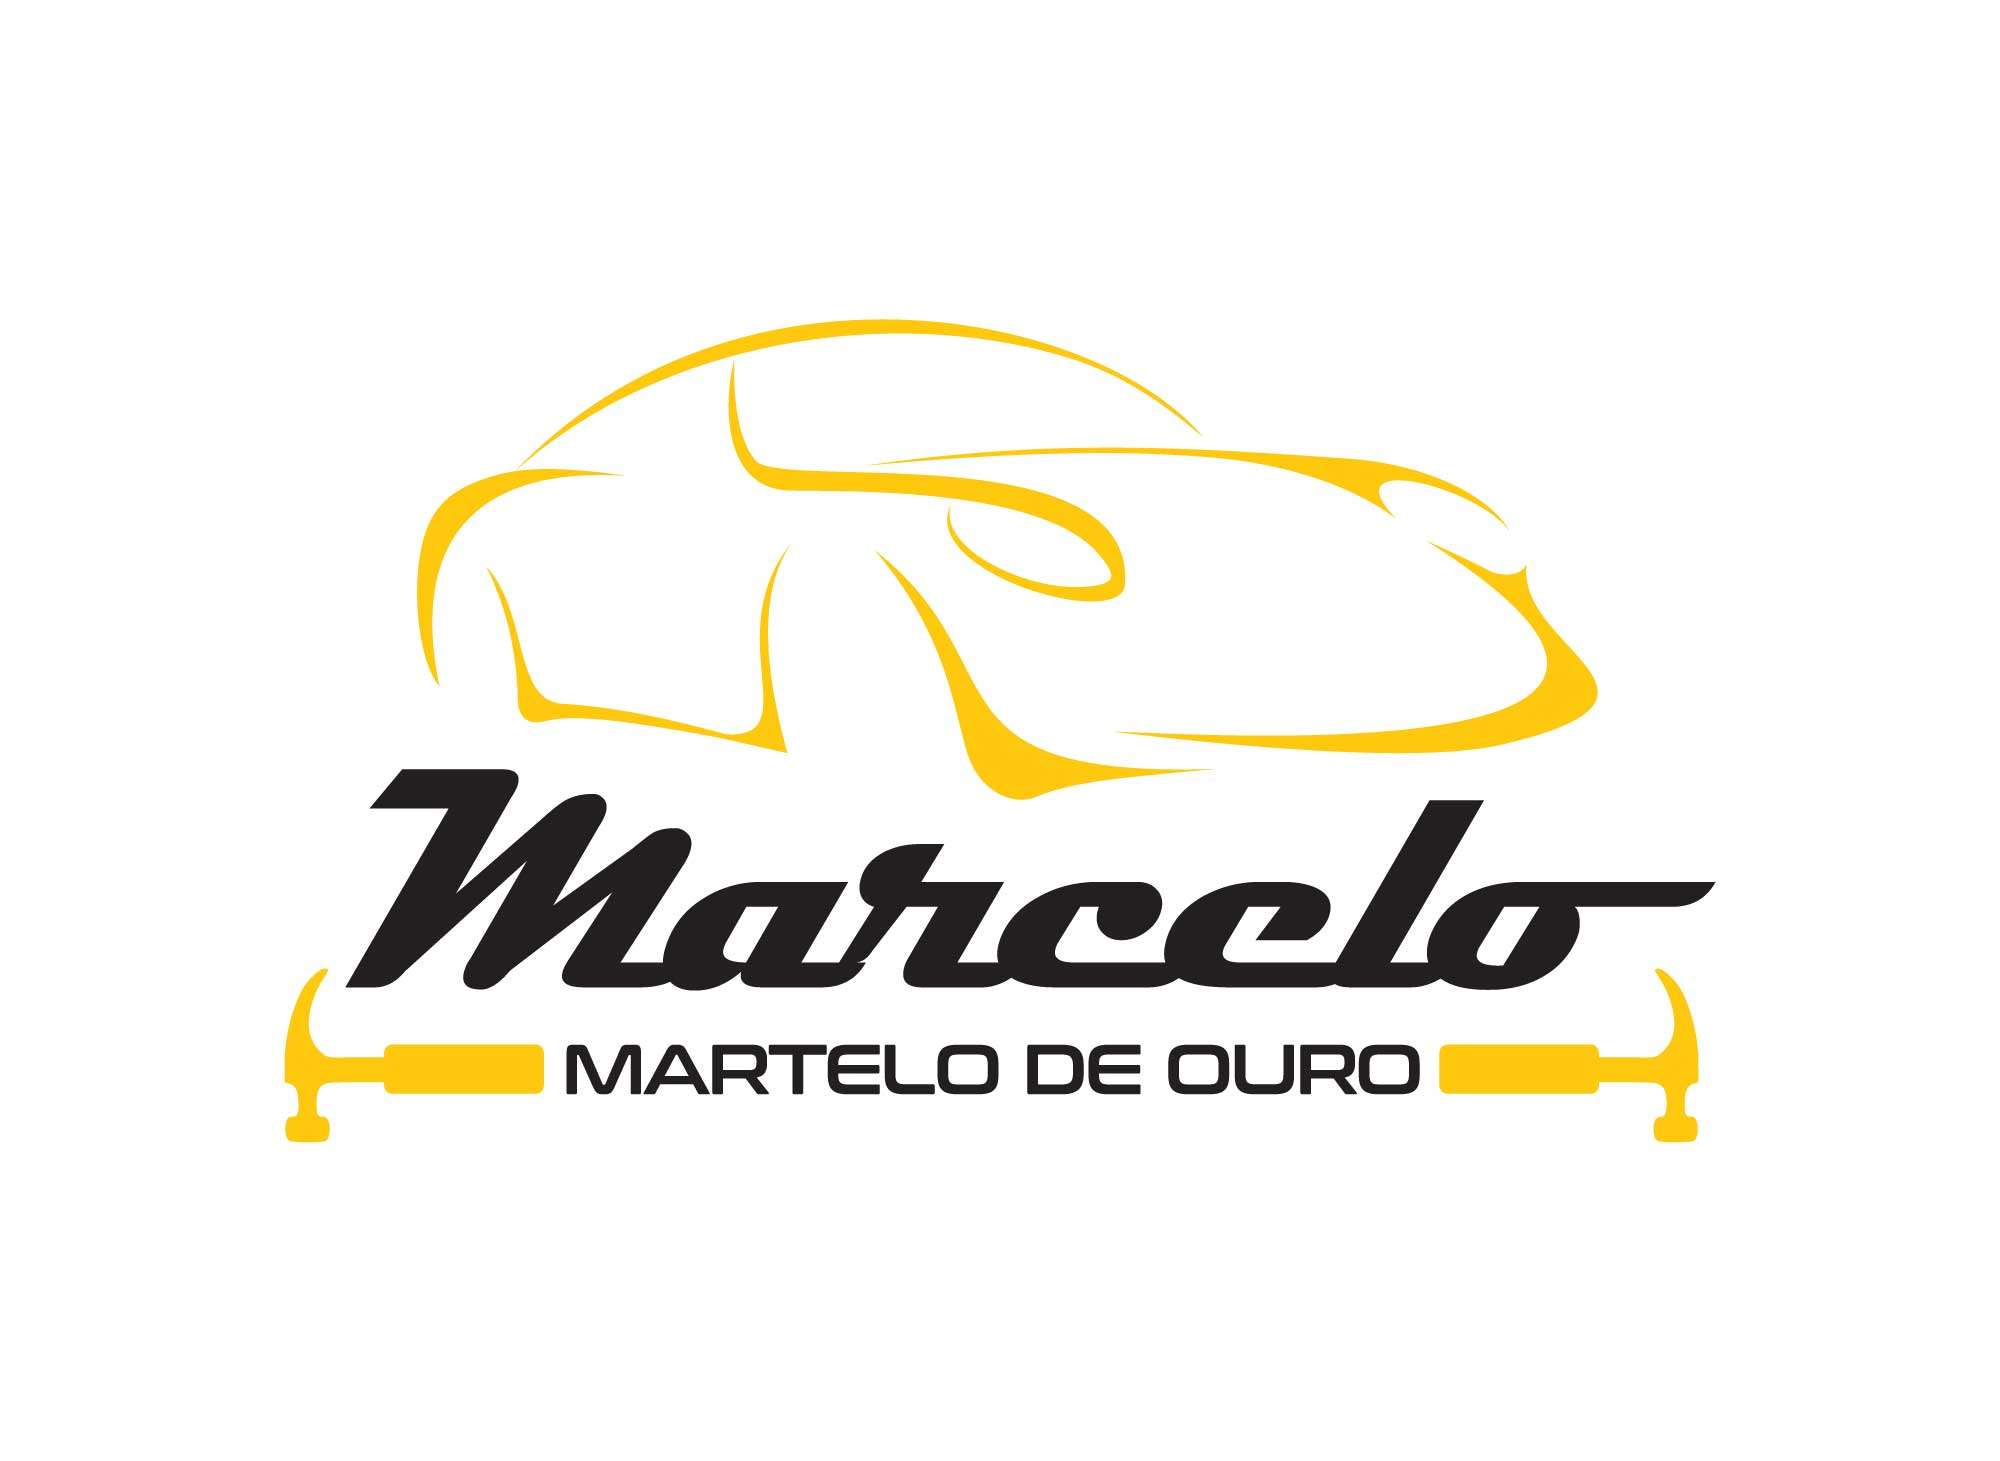 marcelo-martelo-de-ourol-cliente-agencia-diretriz-digital-marketing-fortaleza